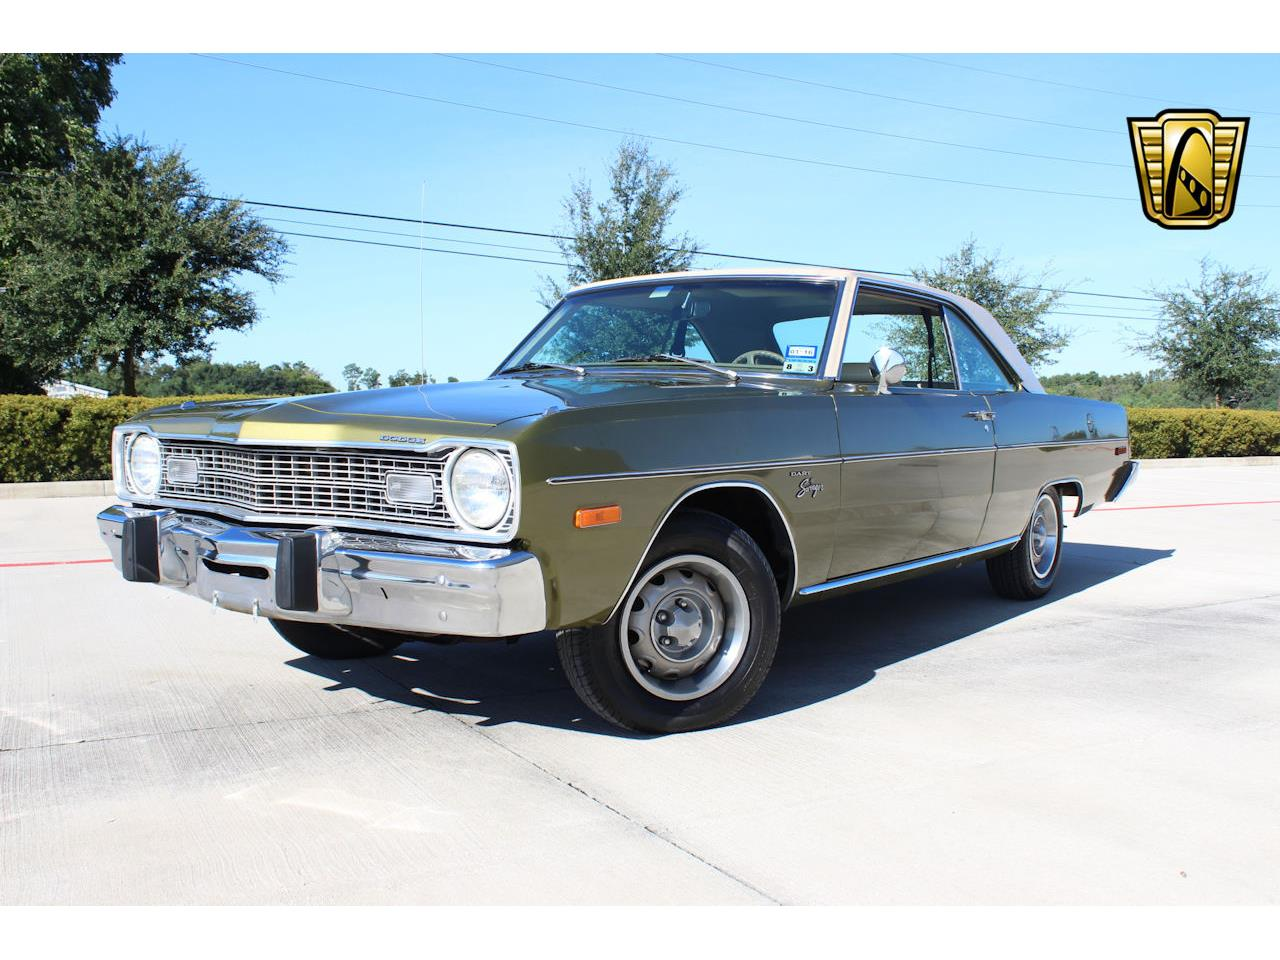 13821146-1974-dodge-dart-std.jpg